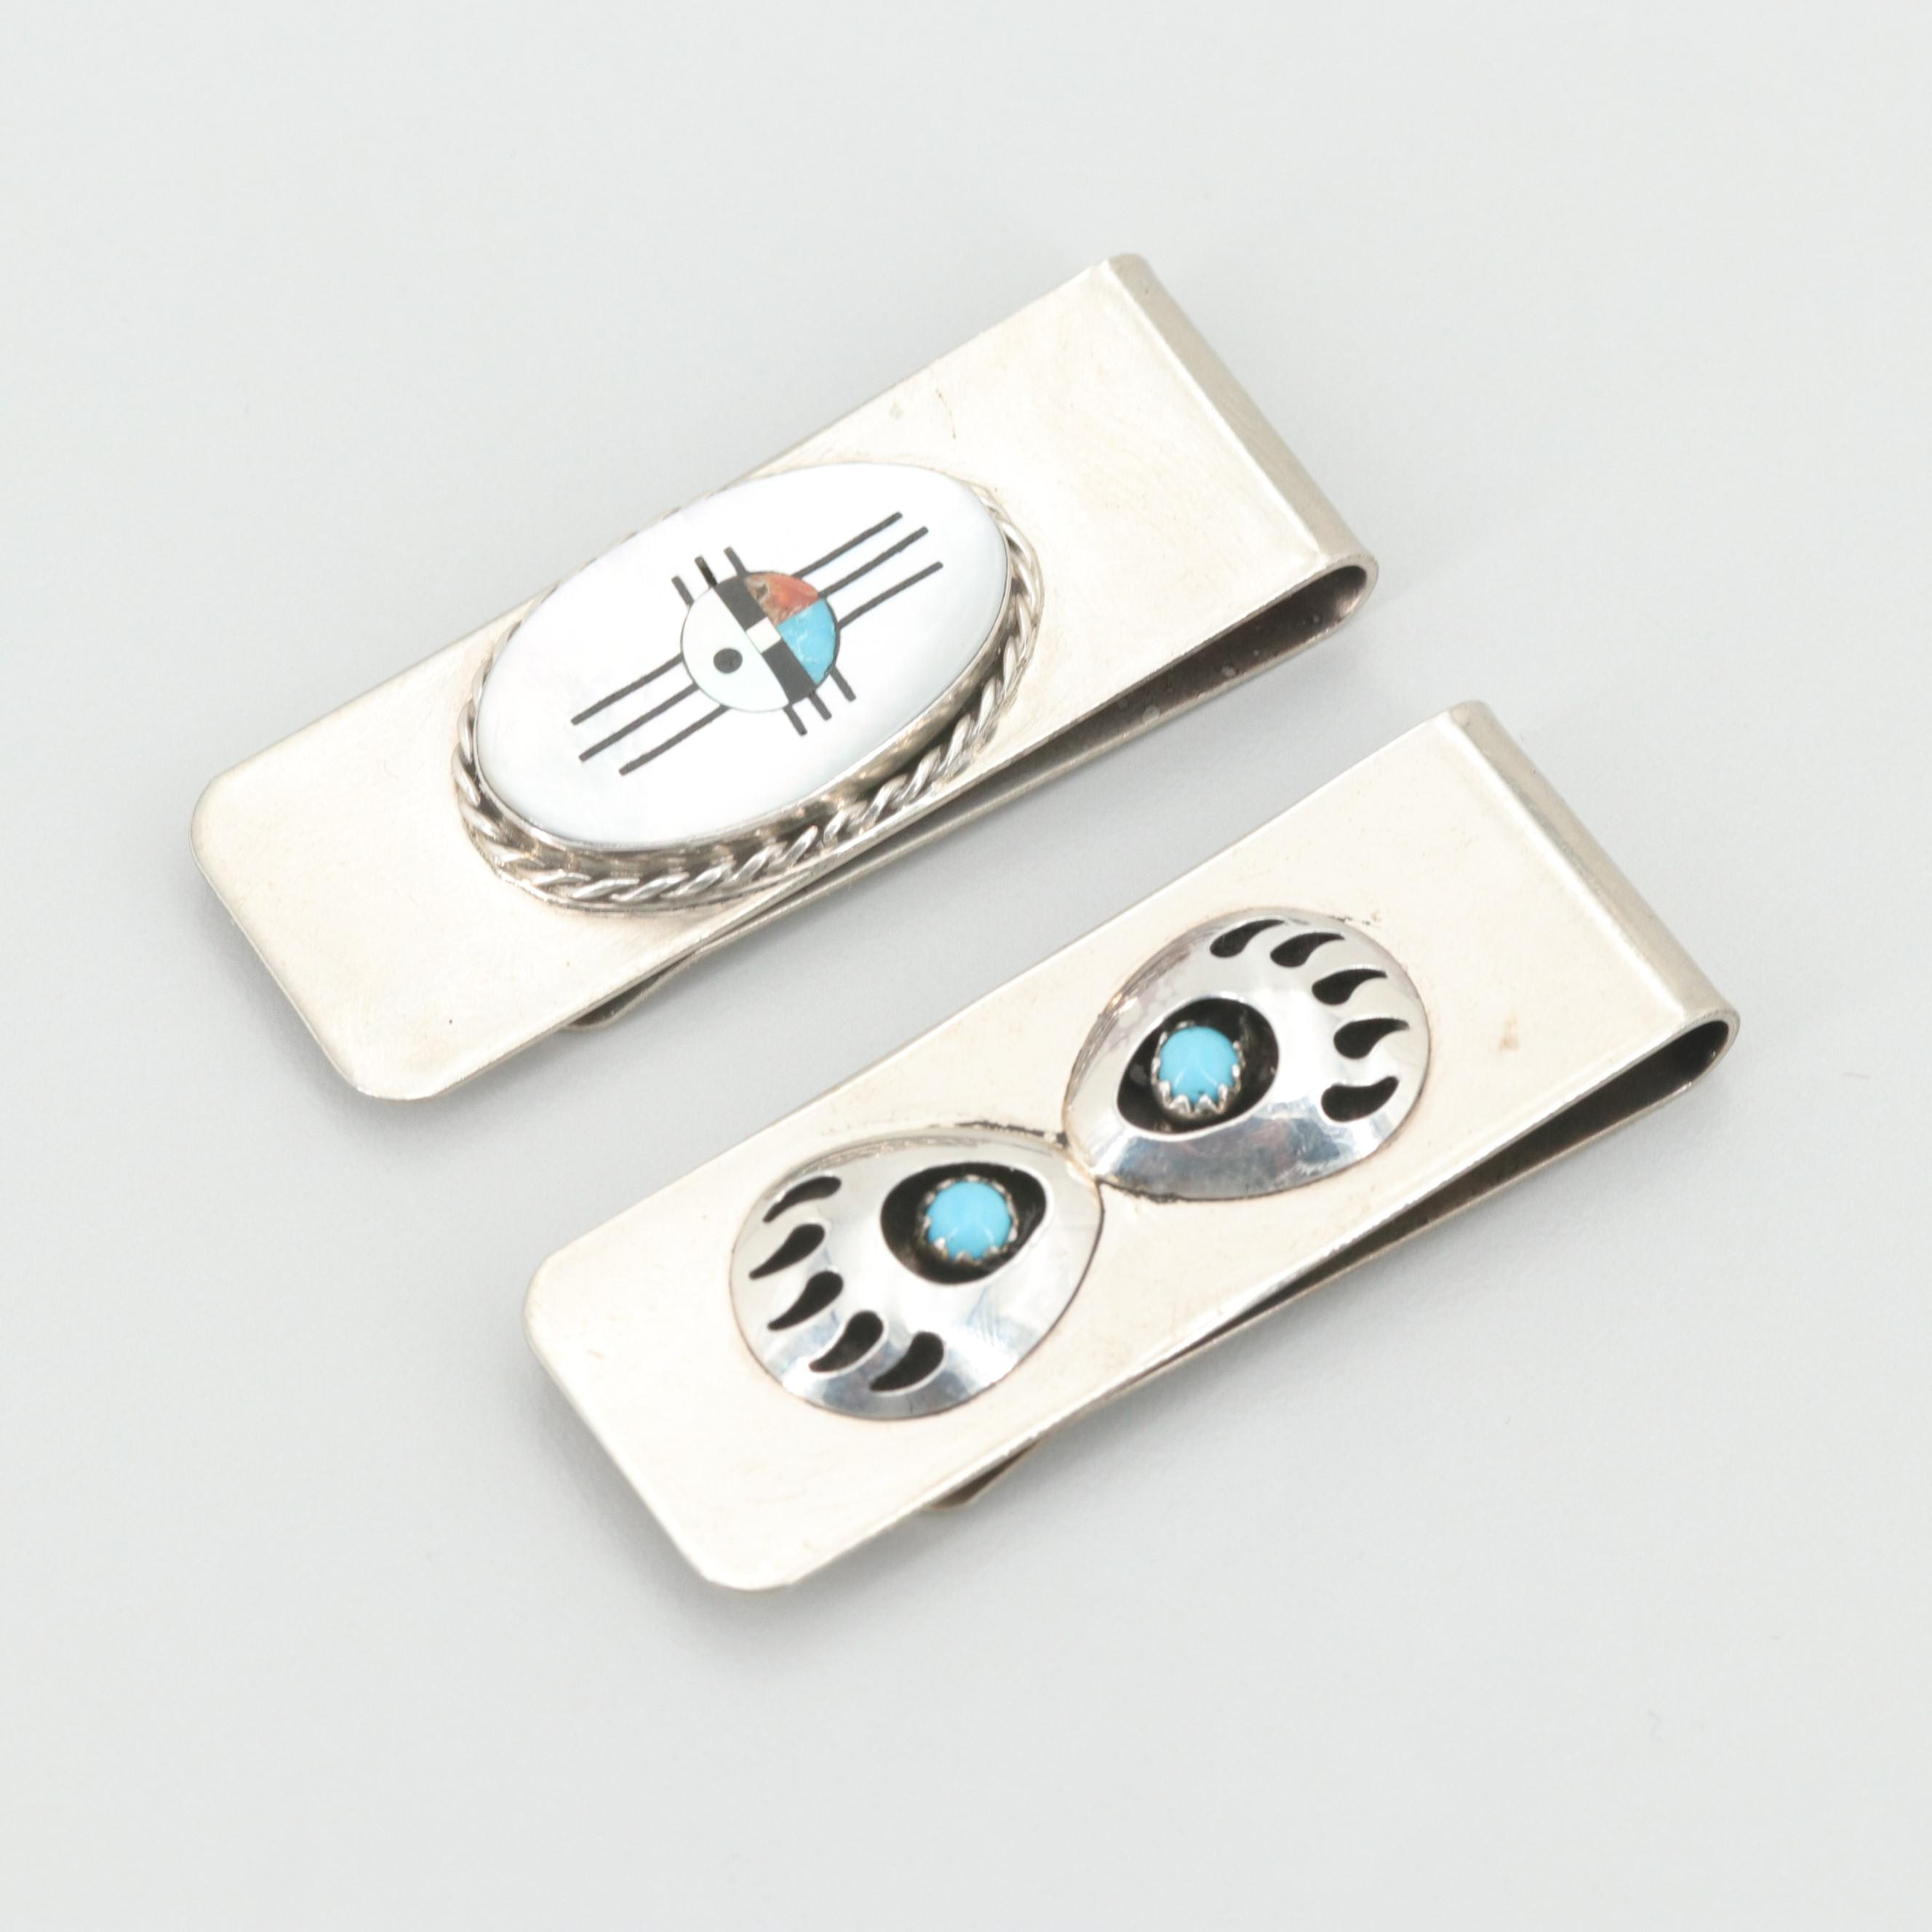 Turquoise and Gemstone Money Clips with Anders Hustito, Zuni and Sterling Accent